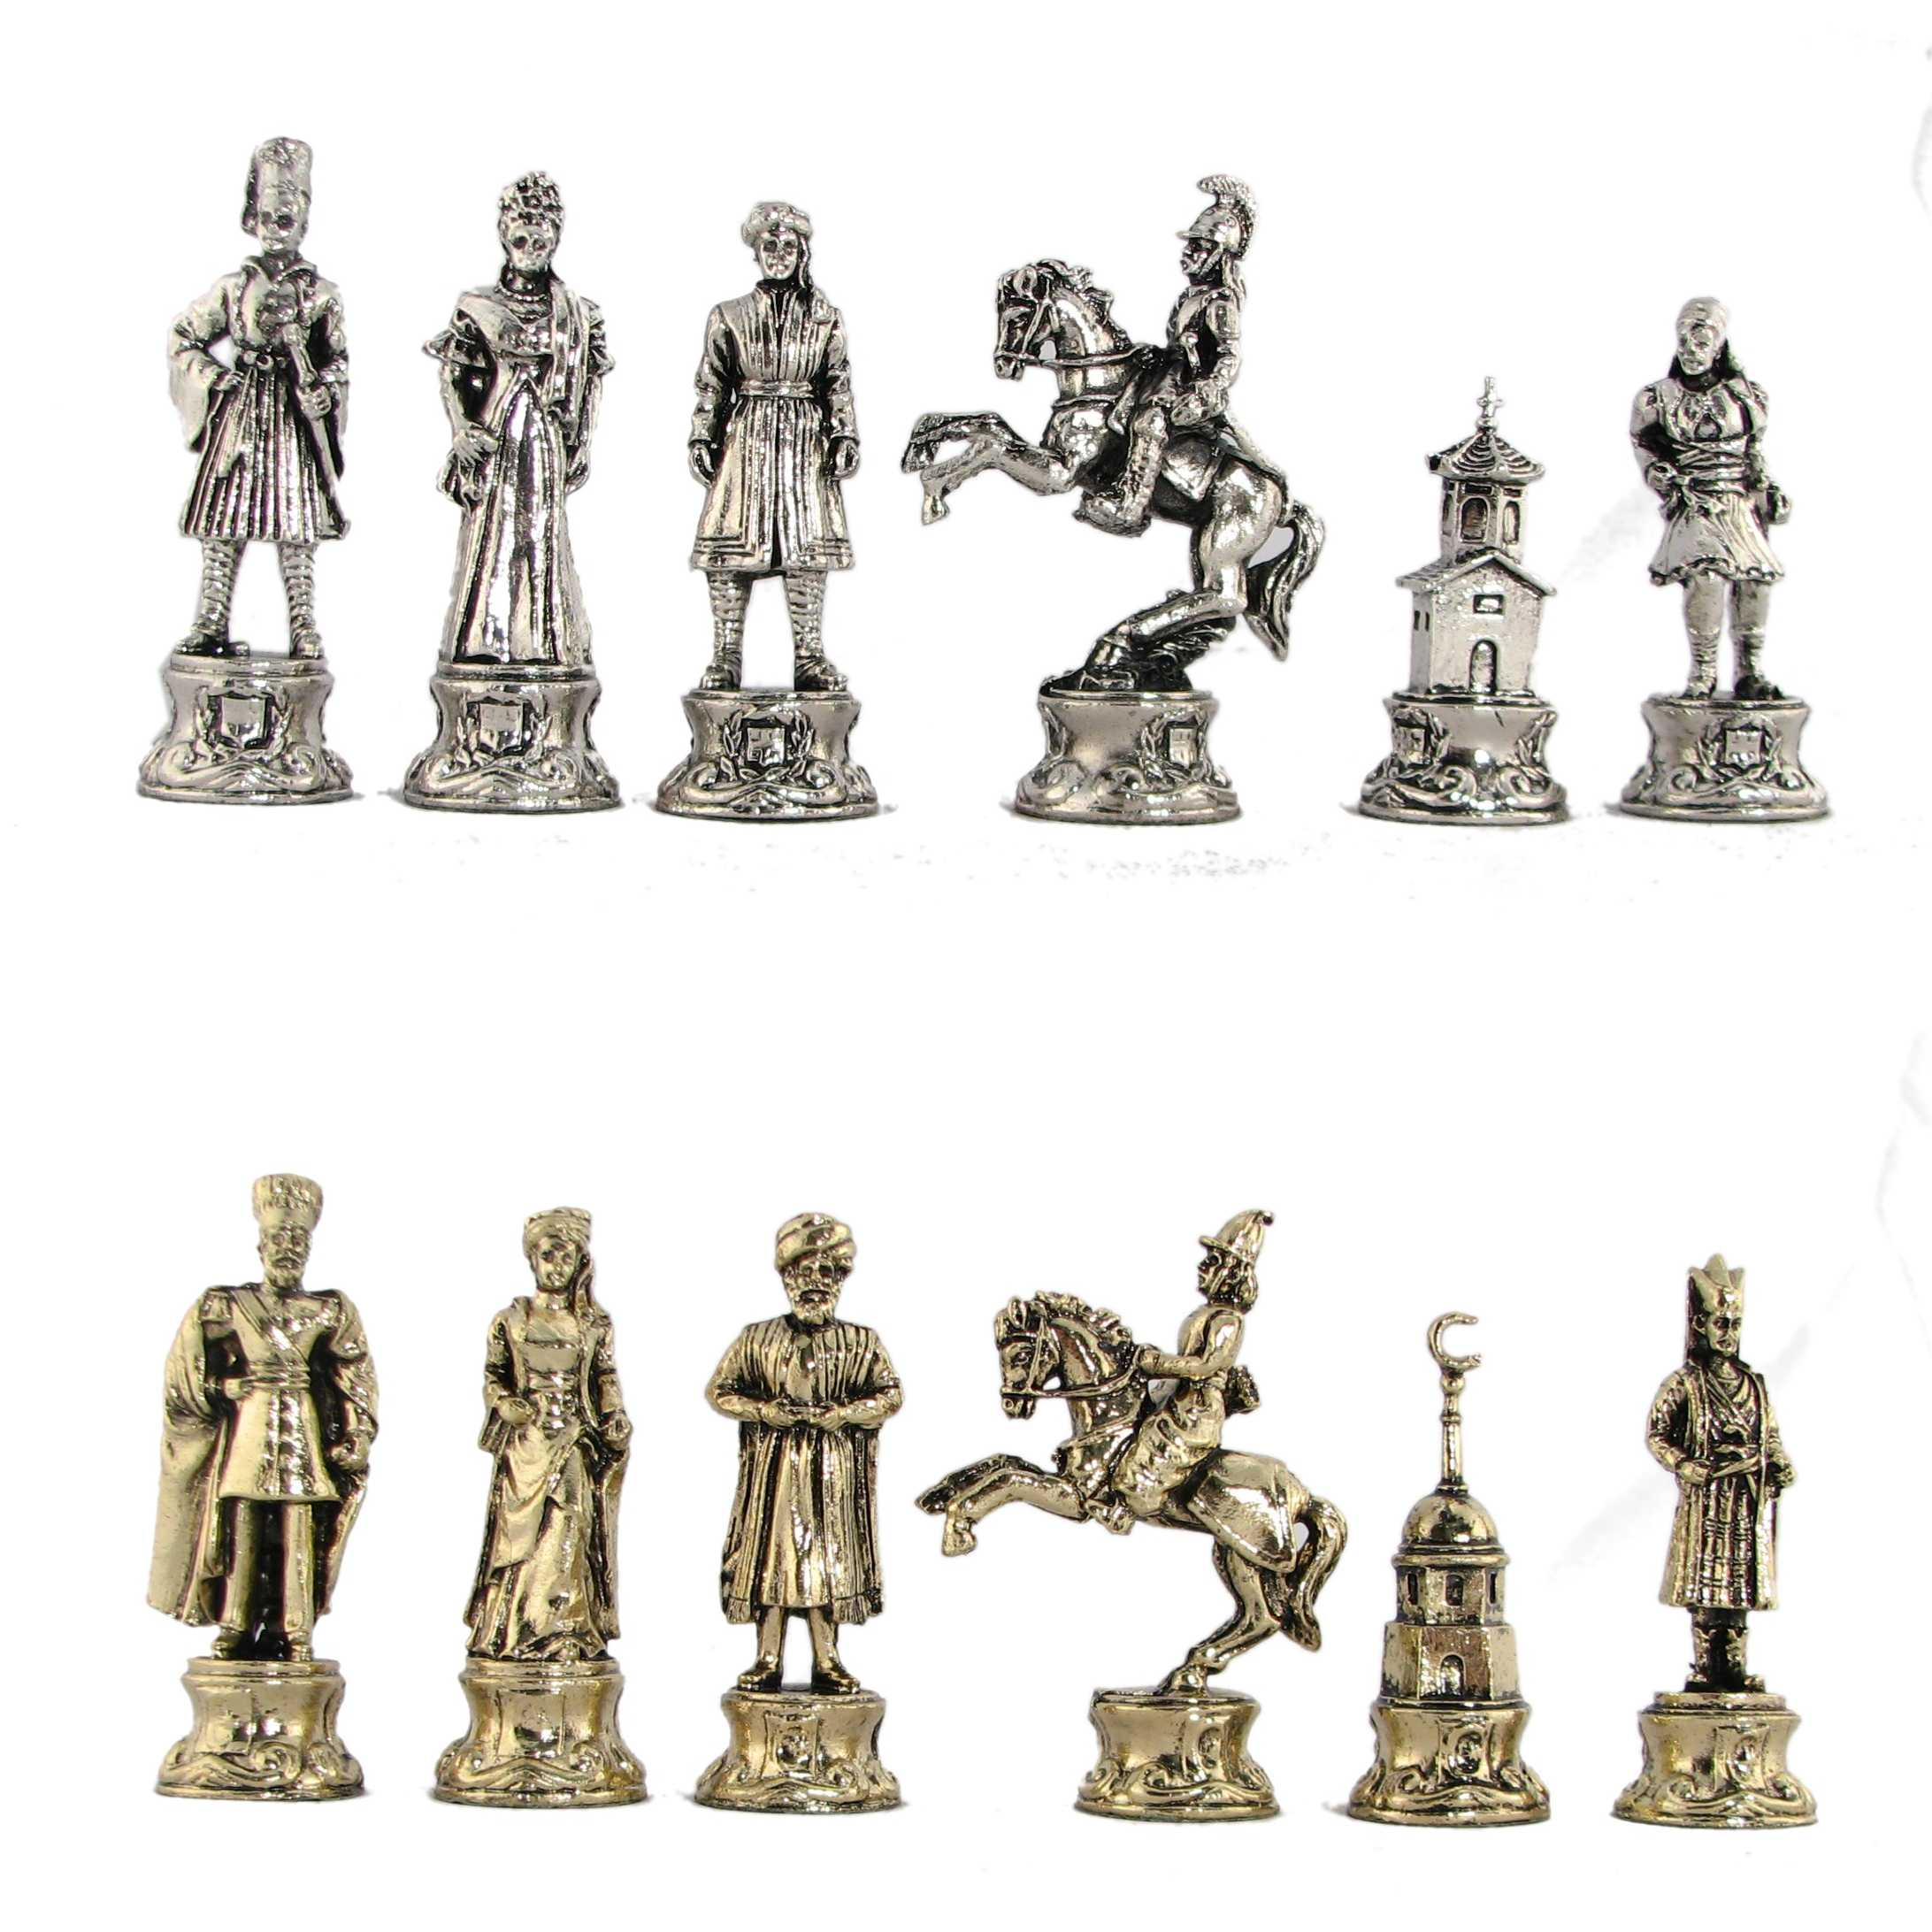 Steel Chess Pieces 3 Quot Ottomans And Greeks Metal Chess Pieces